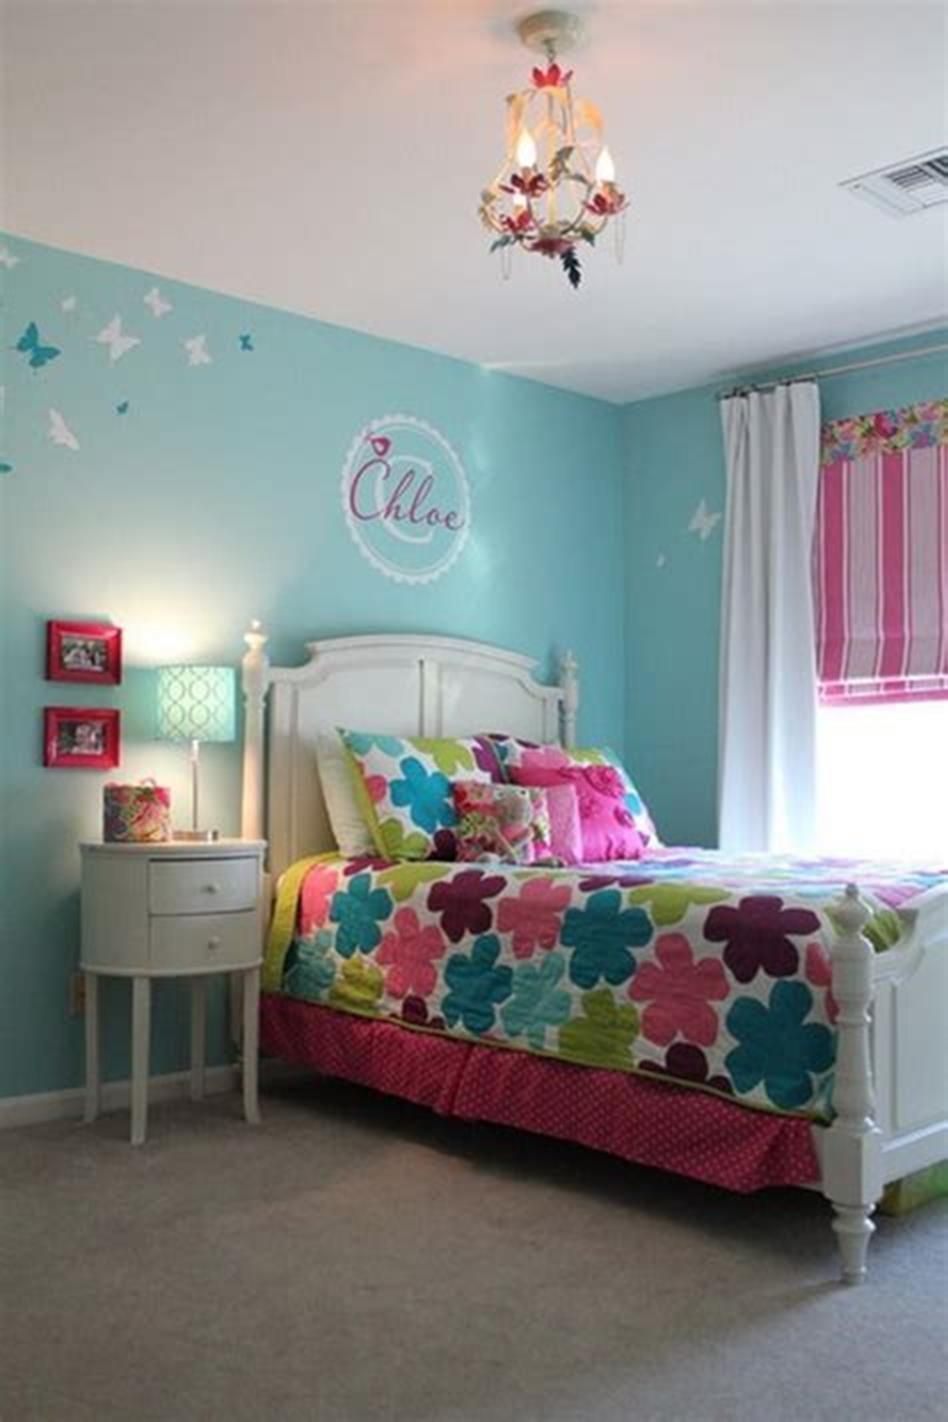 50 Most Popular Bedroom Paint Color Combination For Kids 2019 Girls Bedroom Colors Girls Room Paint Colors Girls Room Paint